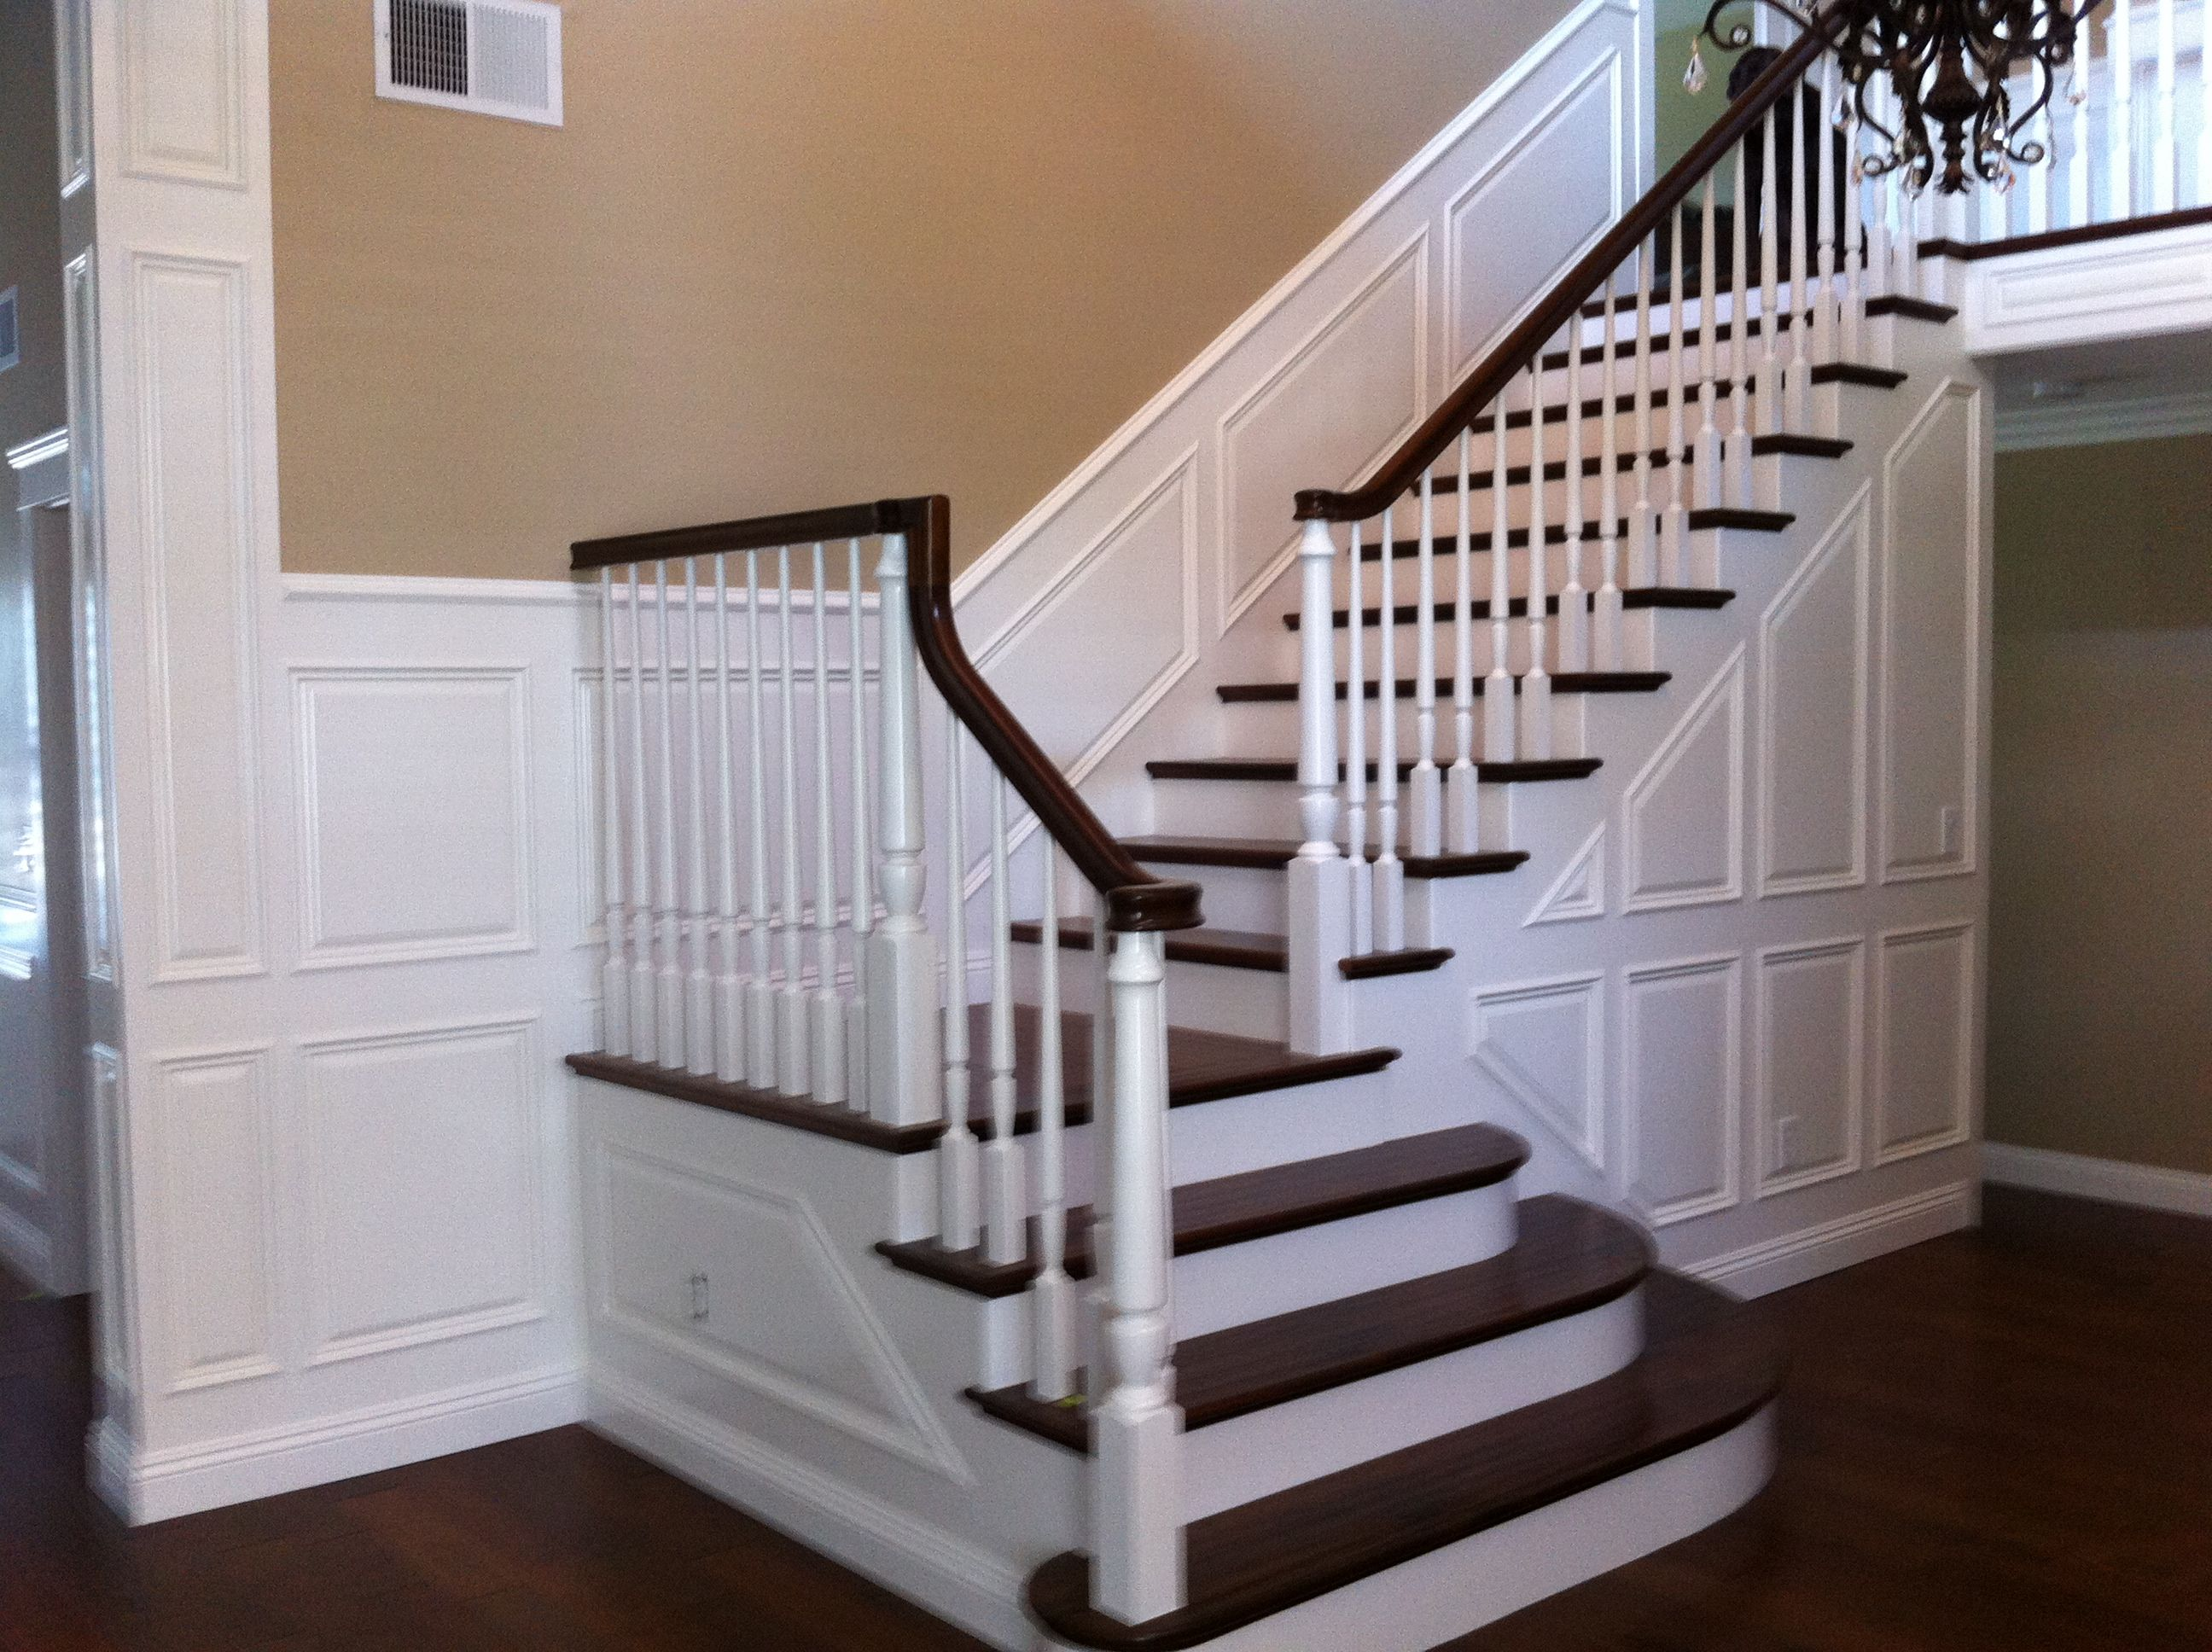 Paneled Staircase Pictures Of Decorative Trim On Vaulted Walls Wainscoting